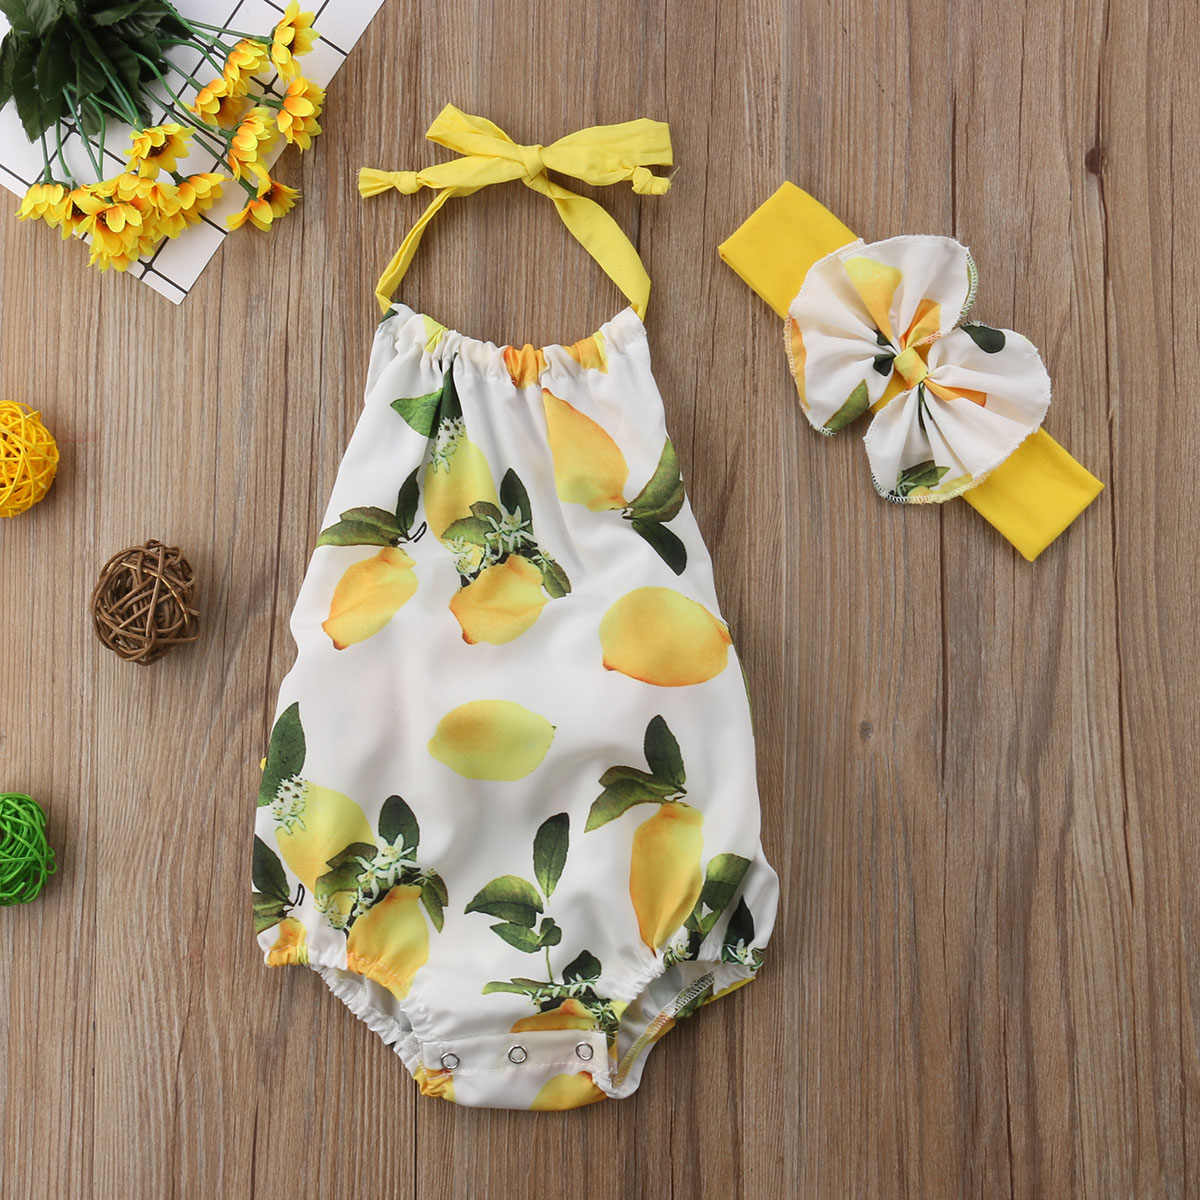 5da059248fb Detail Feedback Questions about PRINTING yellow Newborn Infant Baby Girls  Strap Mango Bodysuit Jumpsuit Outfits 0 24M sleeveless summer sweet lovely  CH on ...